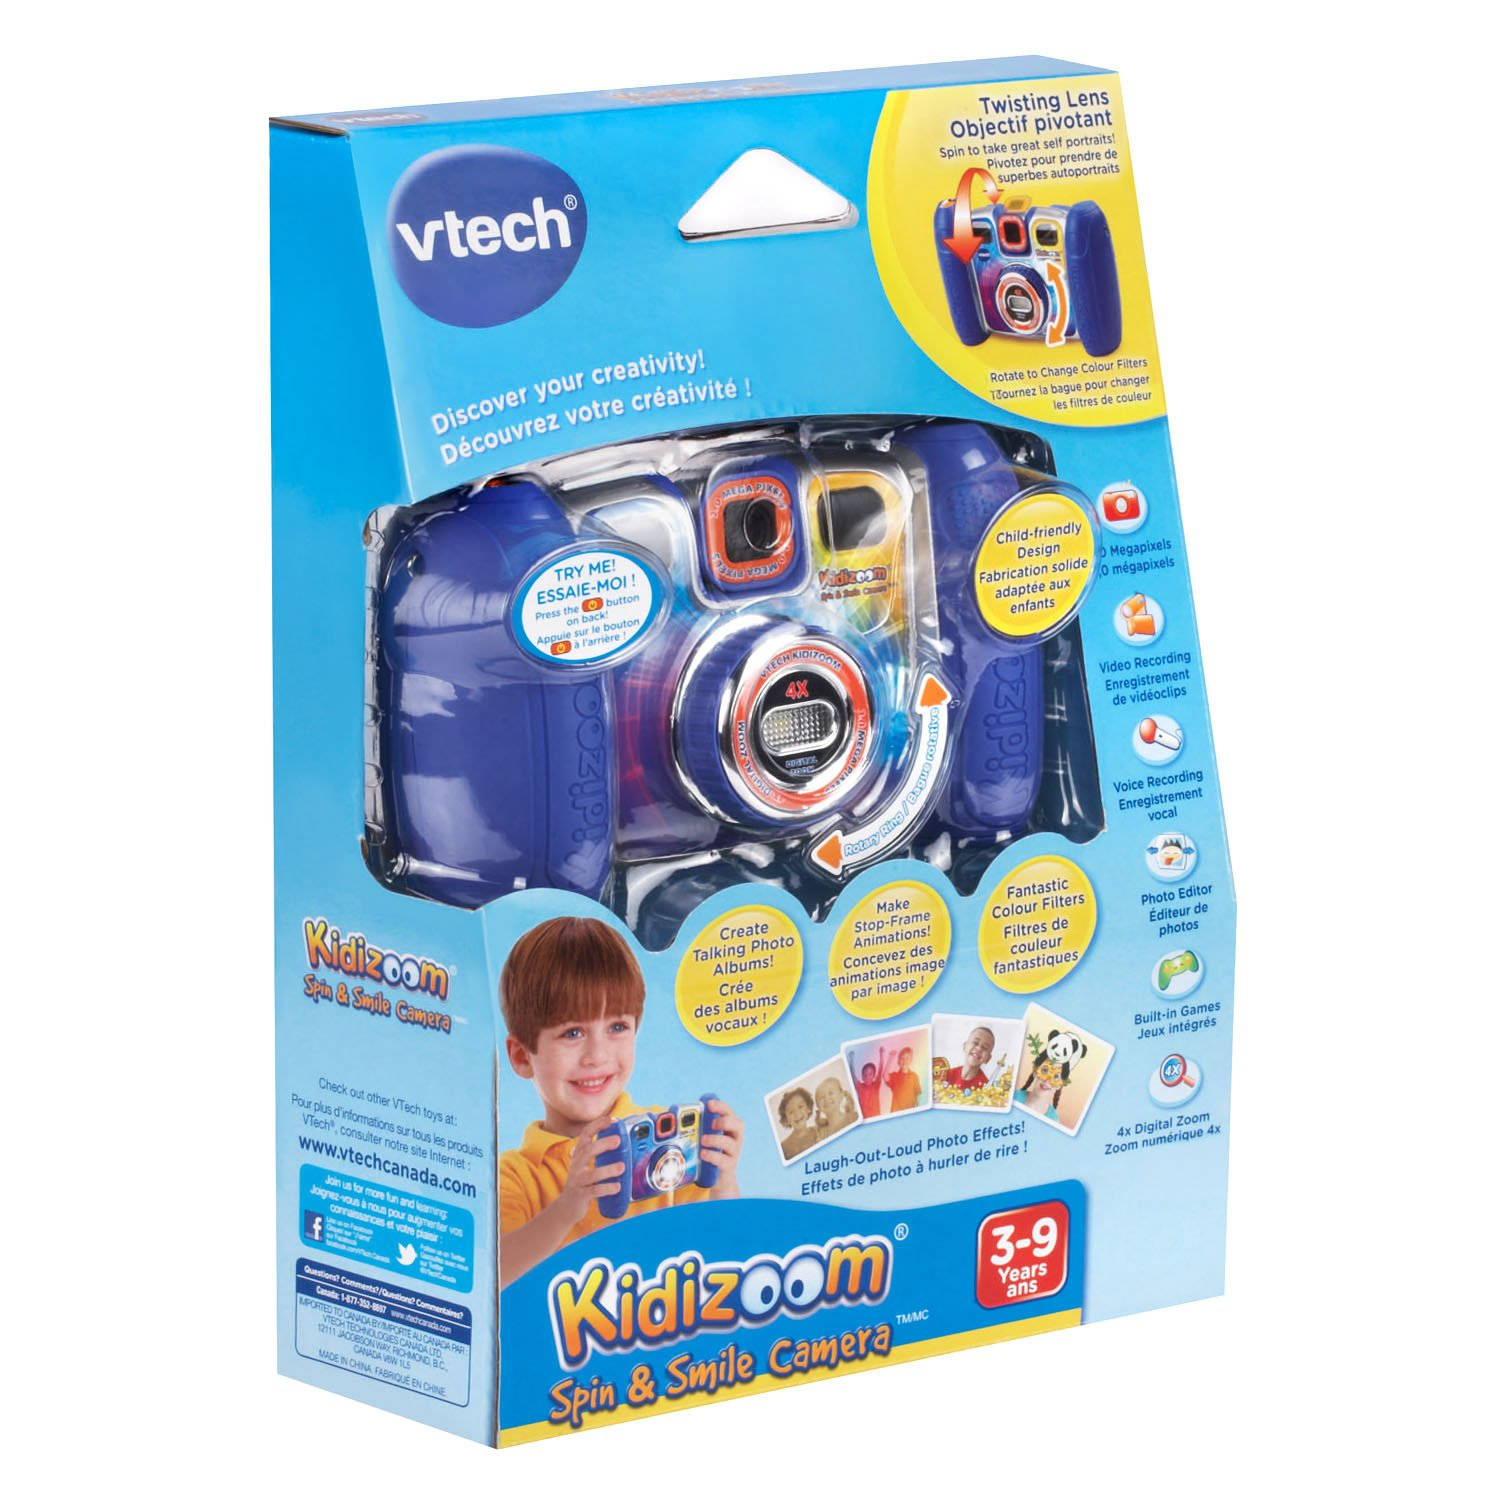 VTech Kidizoom Spin and Smile Camera, Blue by VTech (Image #1)